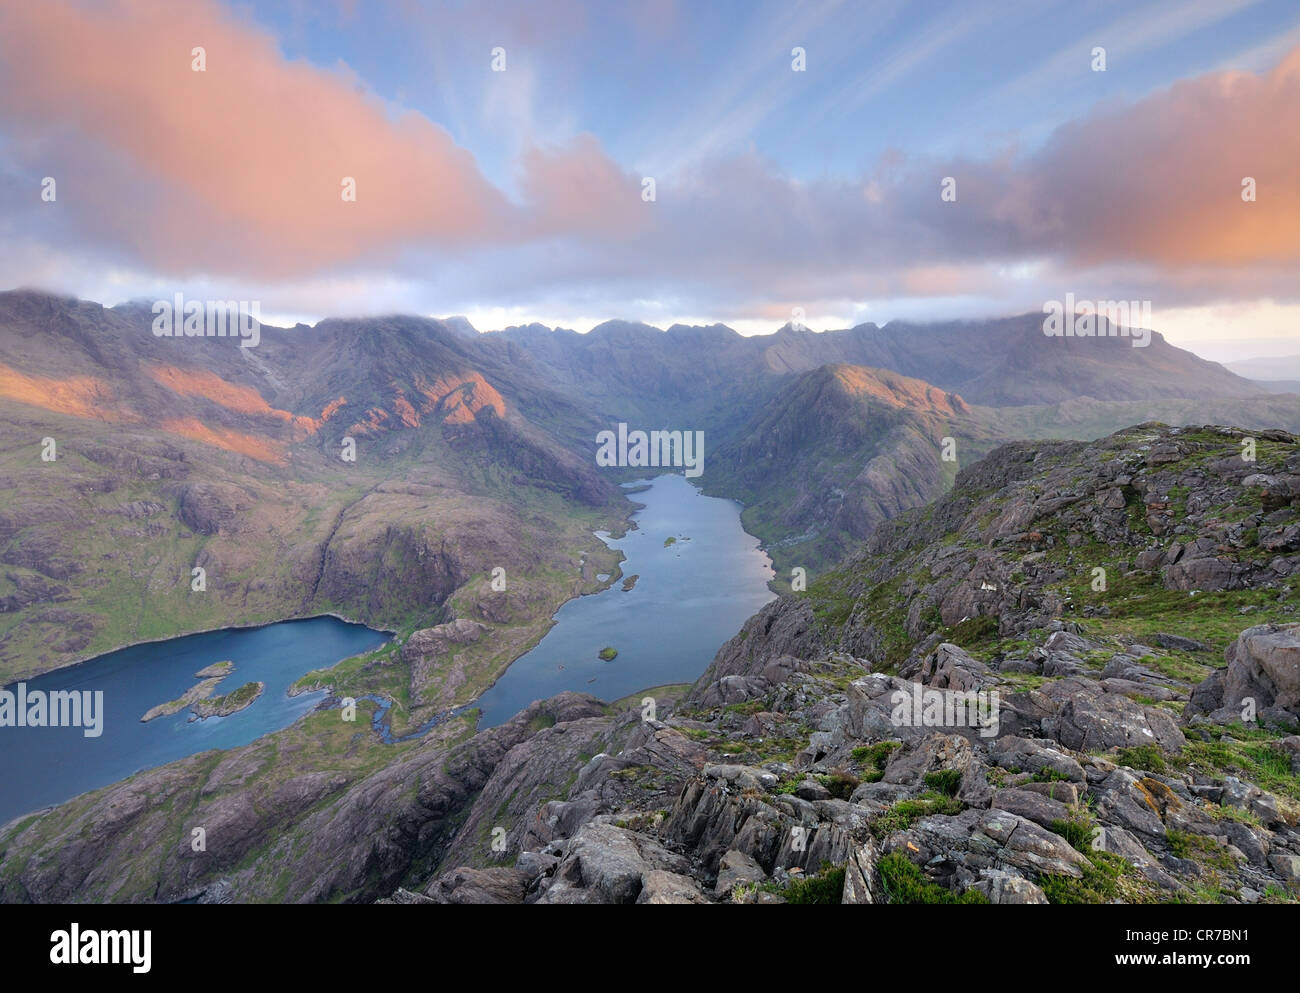 Pink sunlight and clouds over Loch Coruisk and the jagged peaks of the Black Cuillin mountain range on the Isle Stock Photo